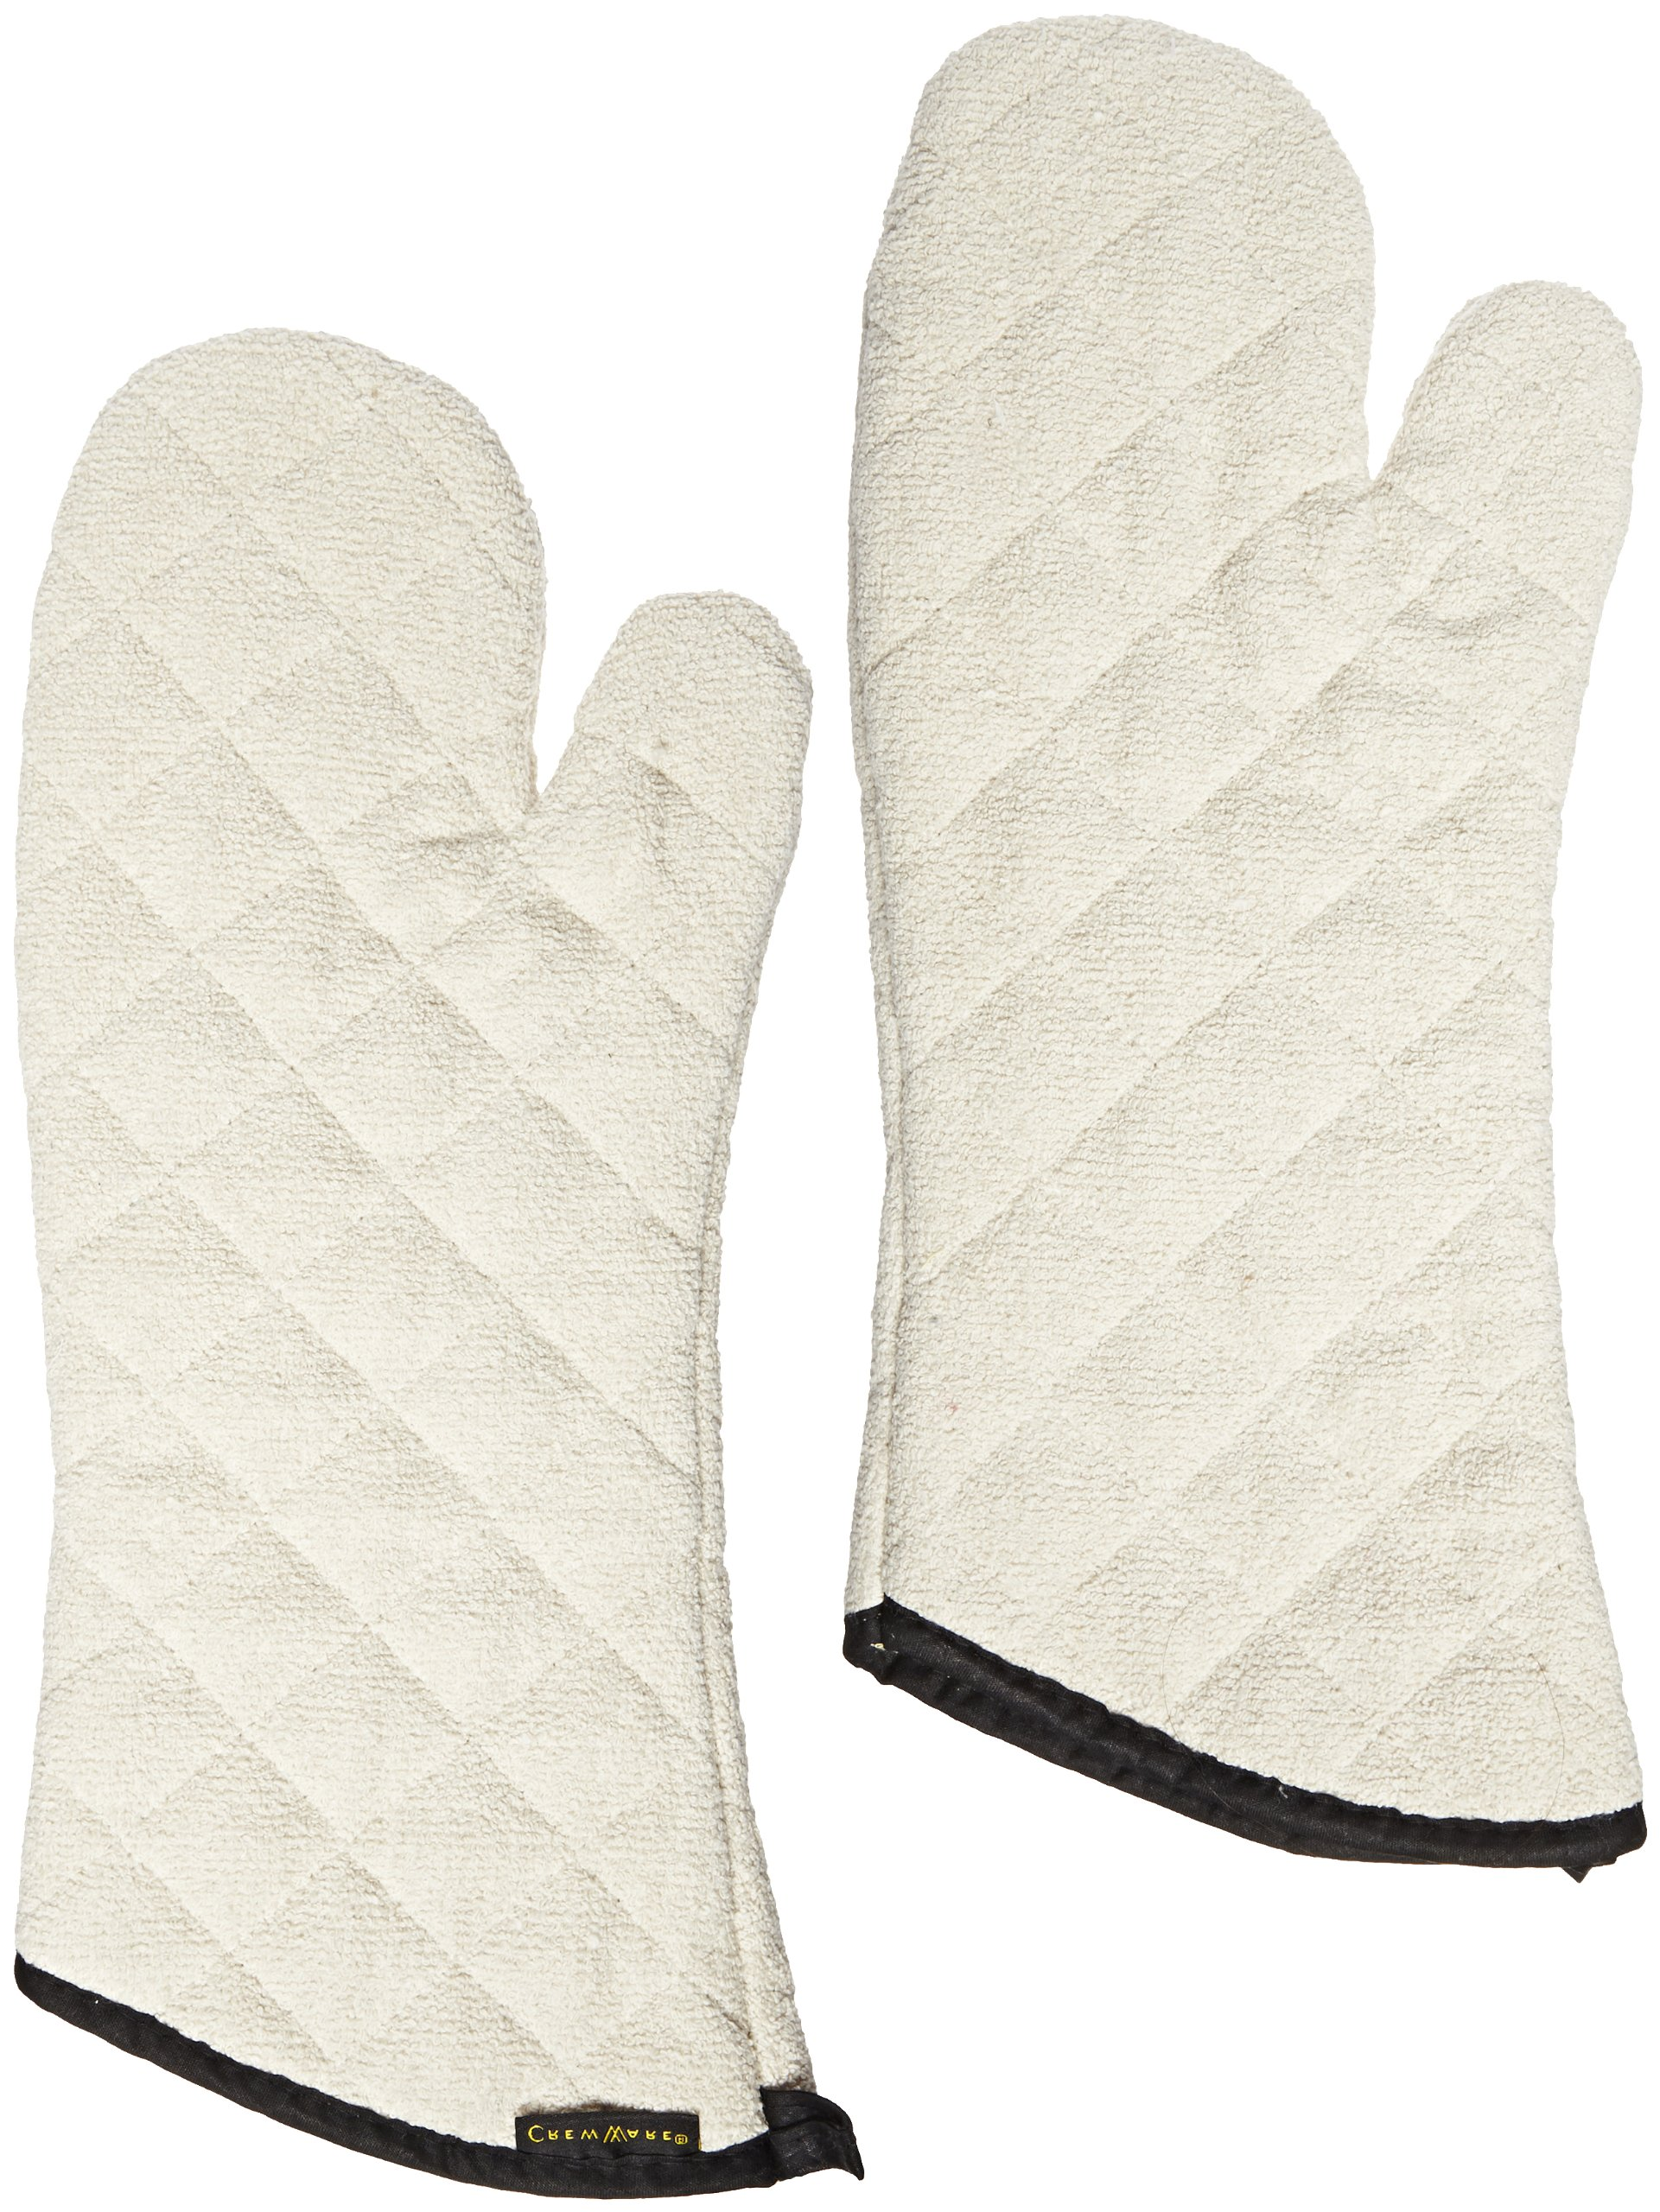 San Jamar 813TMSB Heavy Duty Terry Cloth Temperature Protection Oven Mitt with Steam Barrier, 13'' Length, Natural by San Jamar